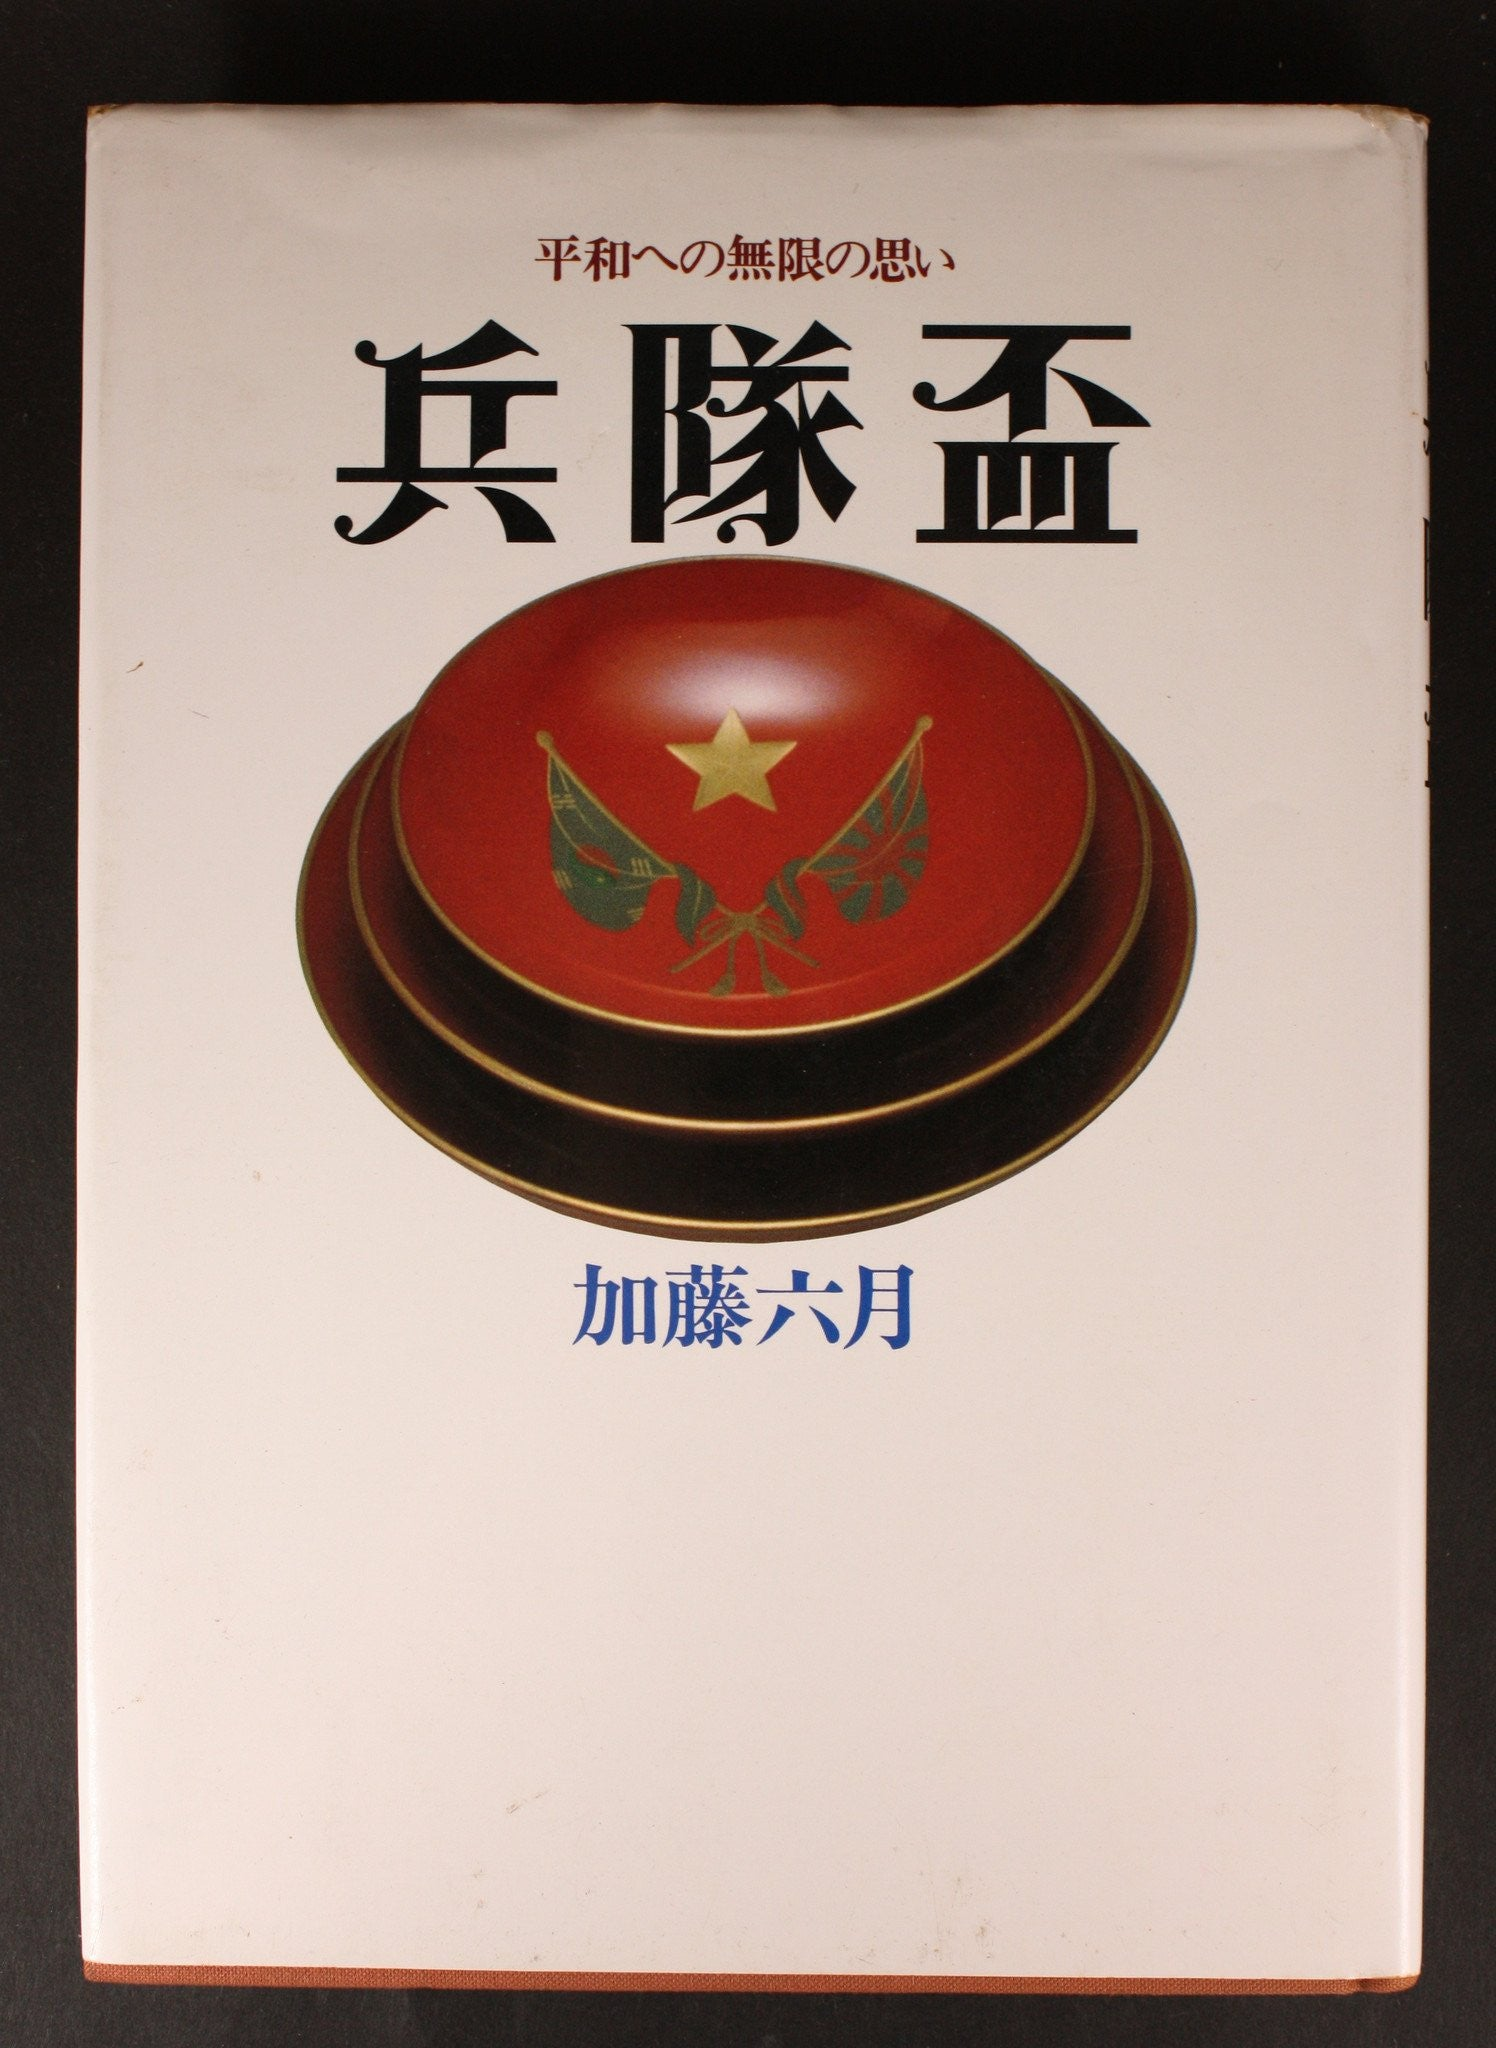 Learning about military sake cups: Books